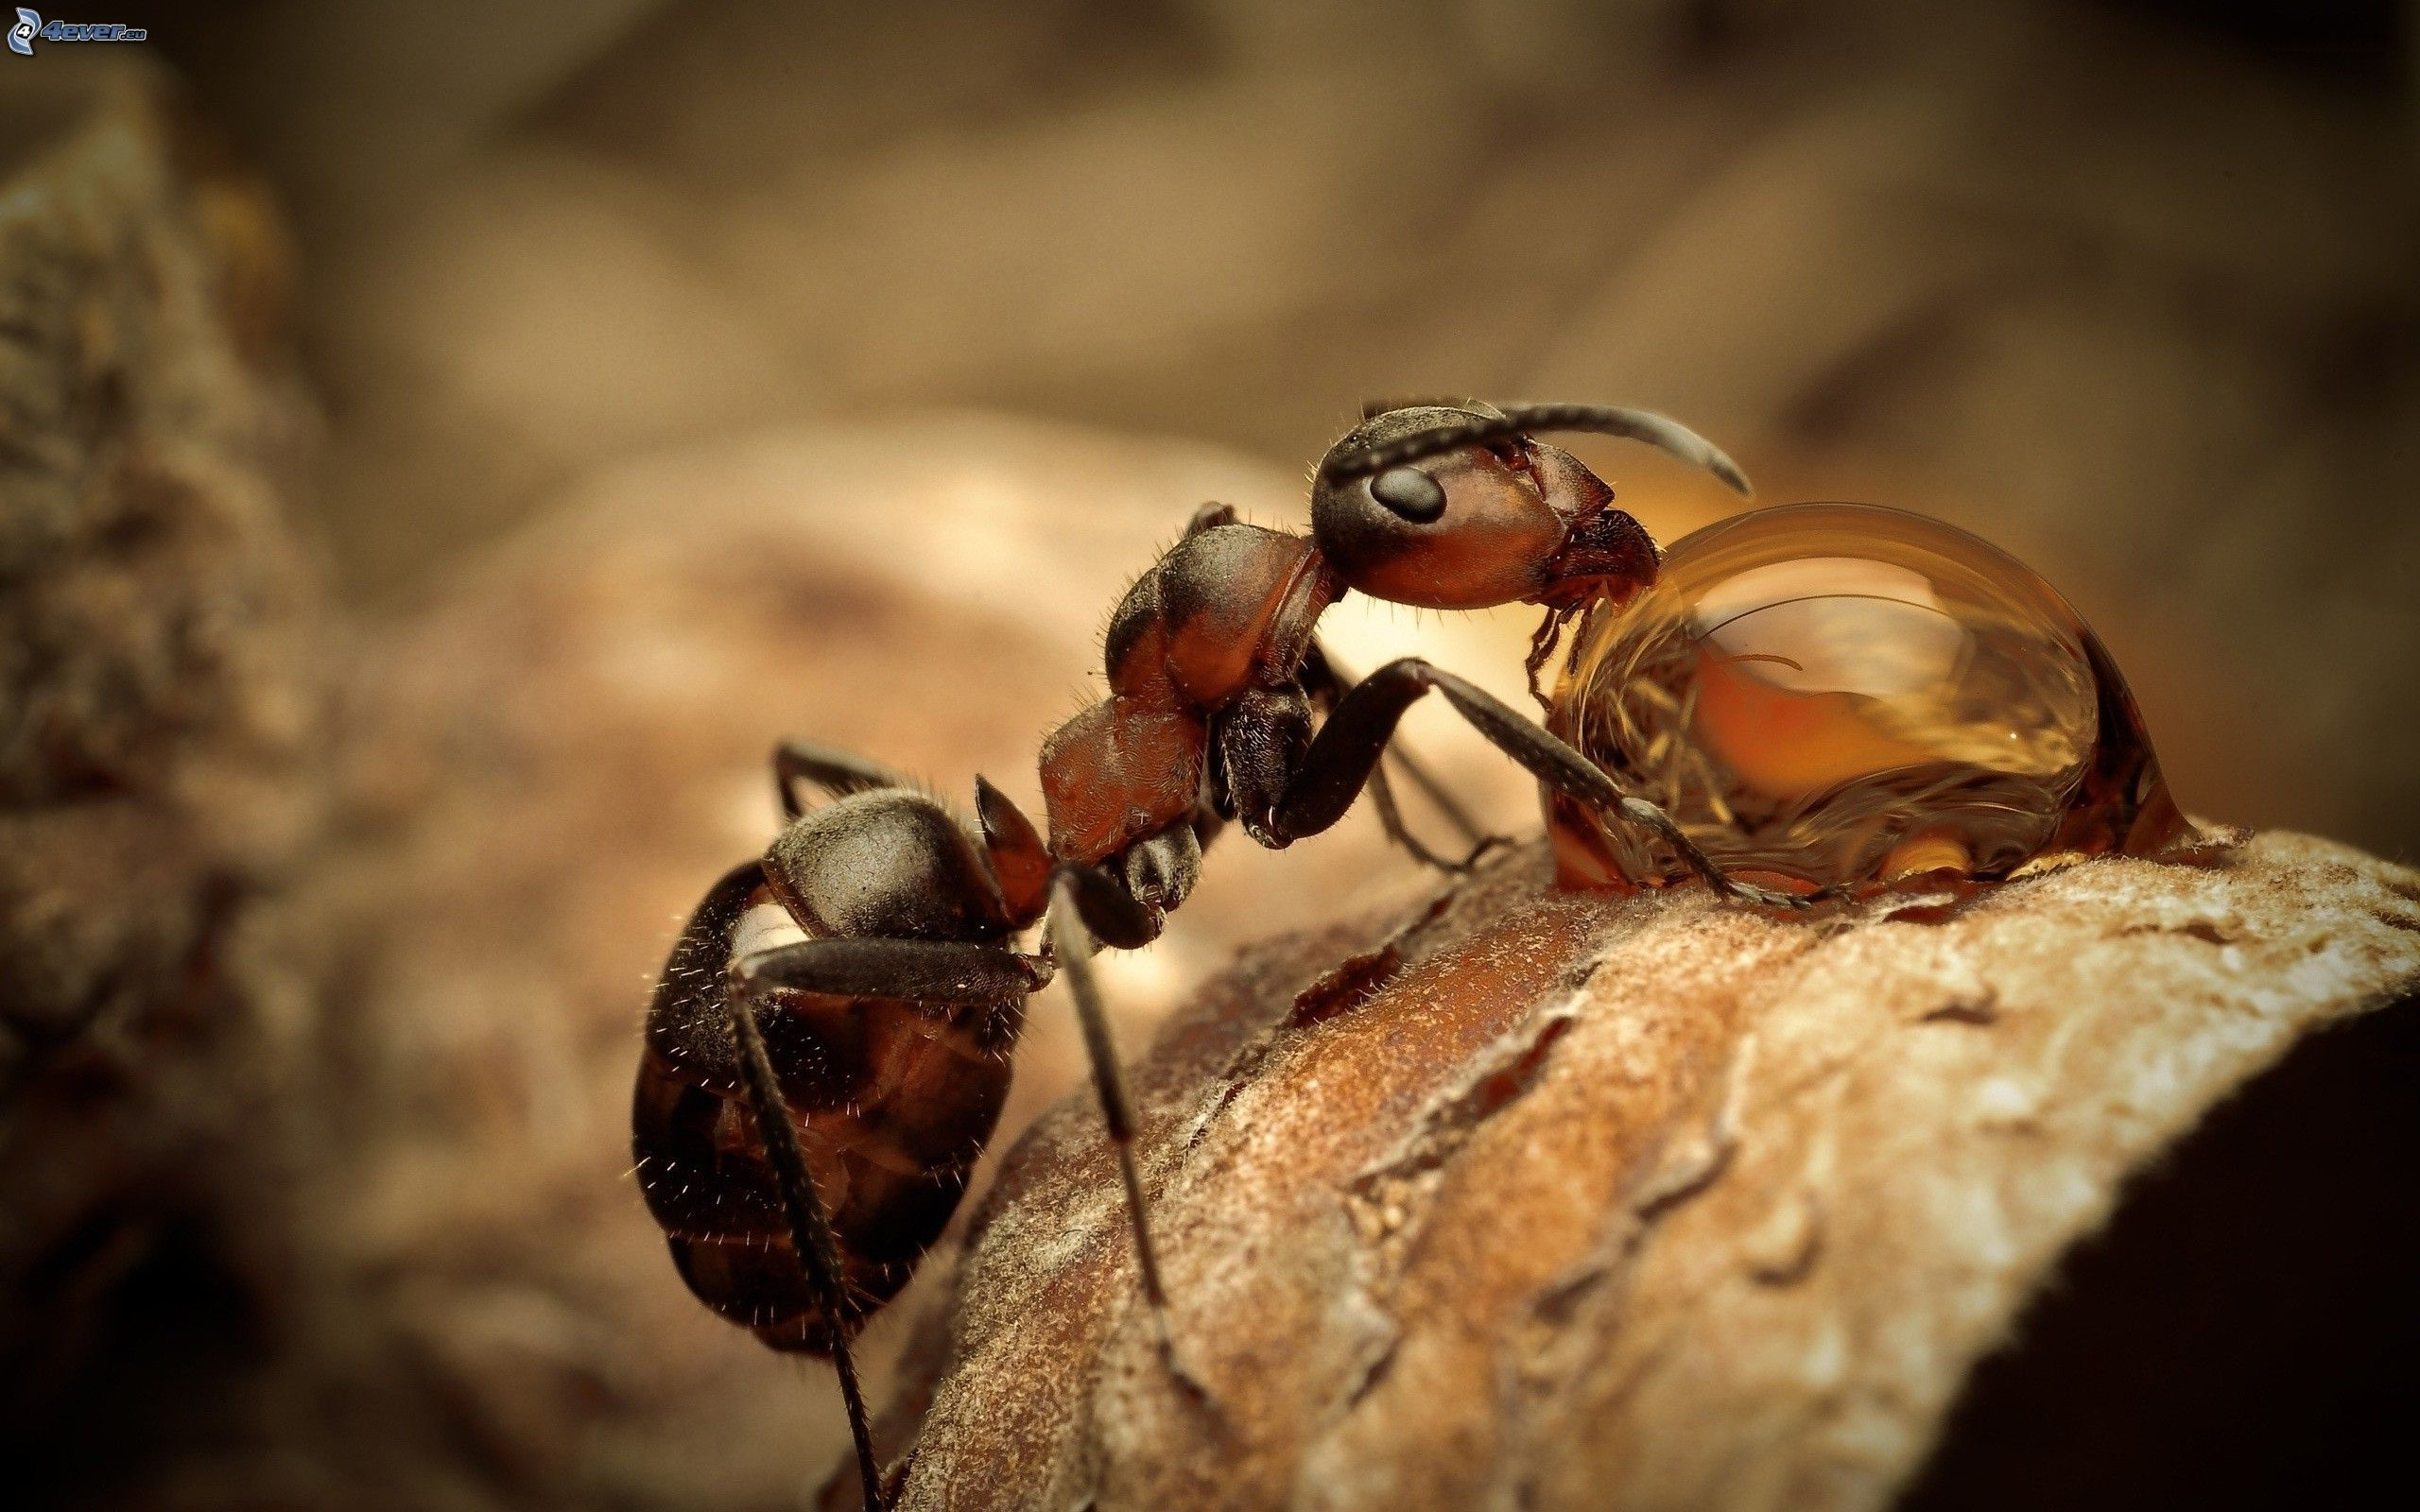 ant macro photography wallpaper - photo #12